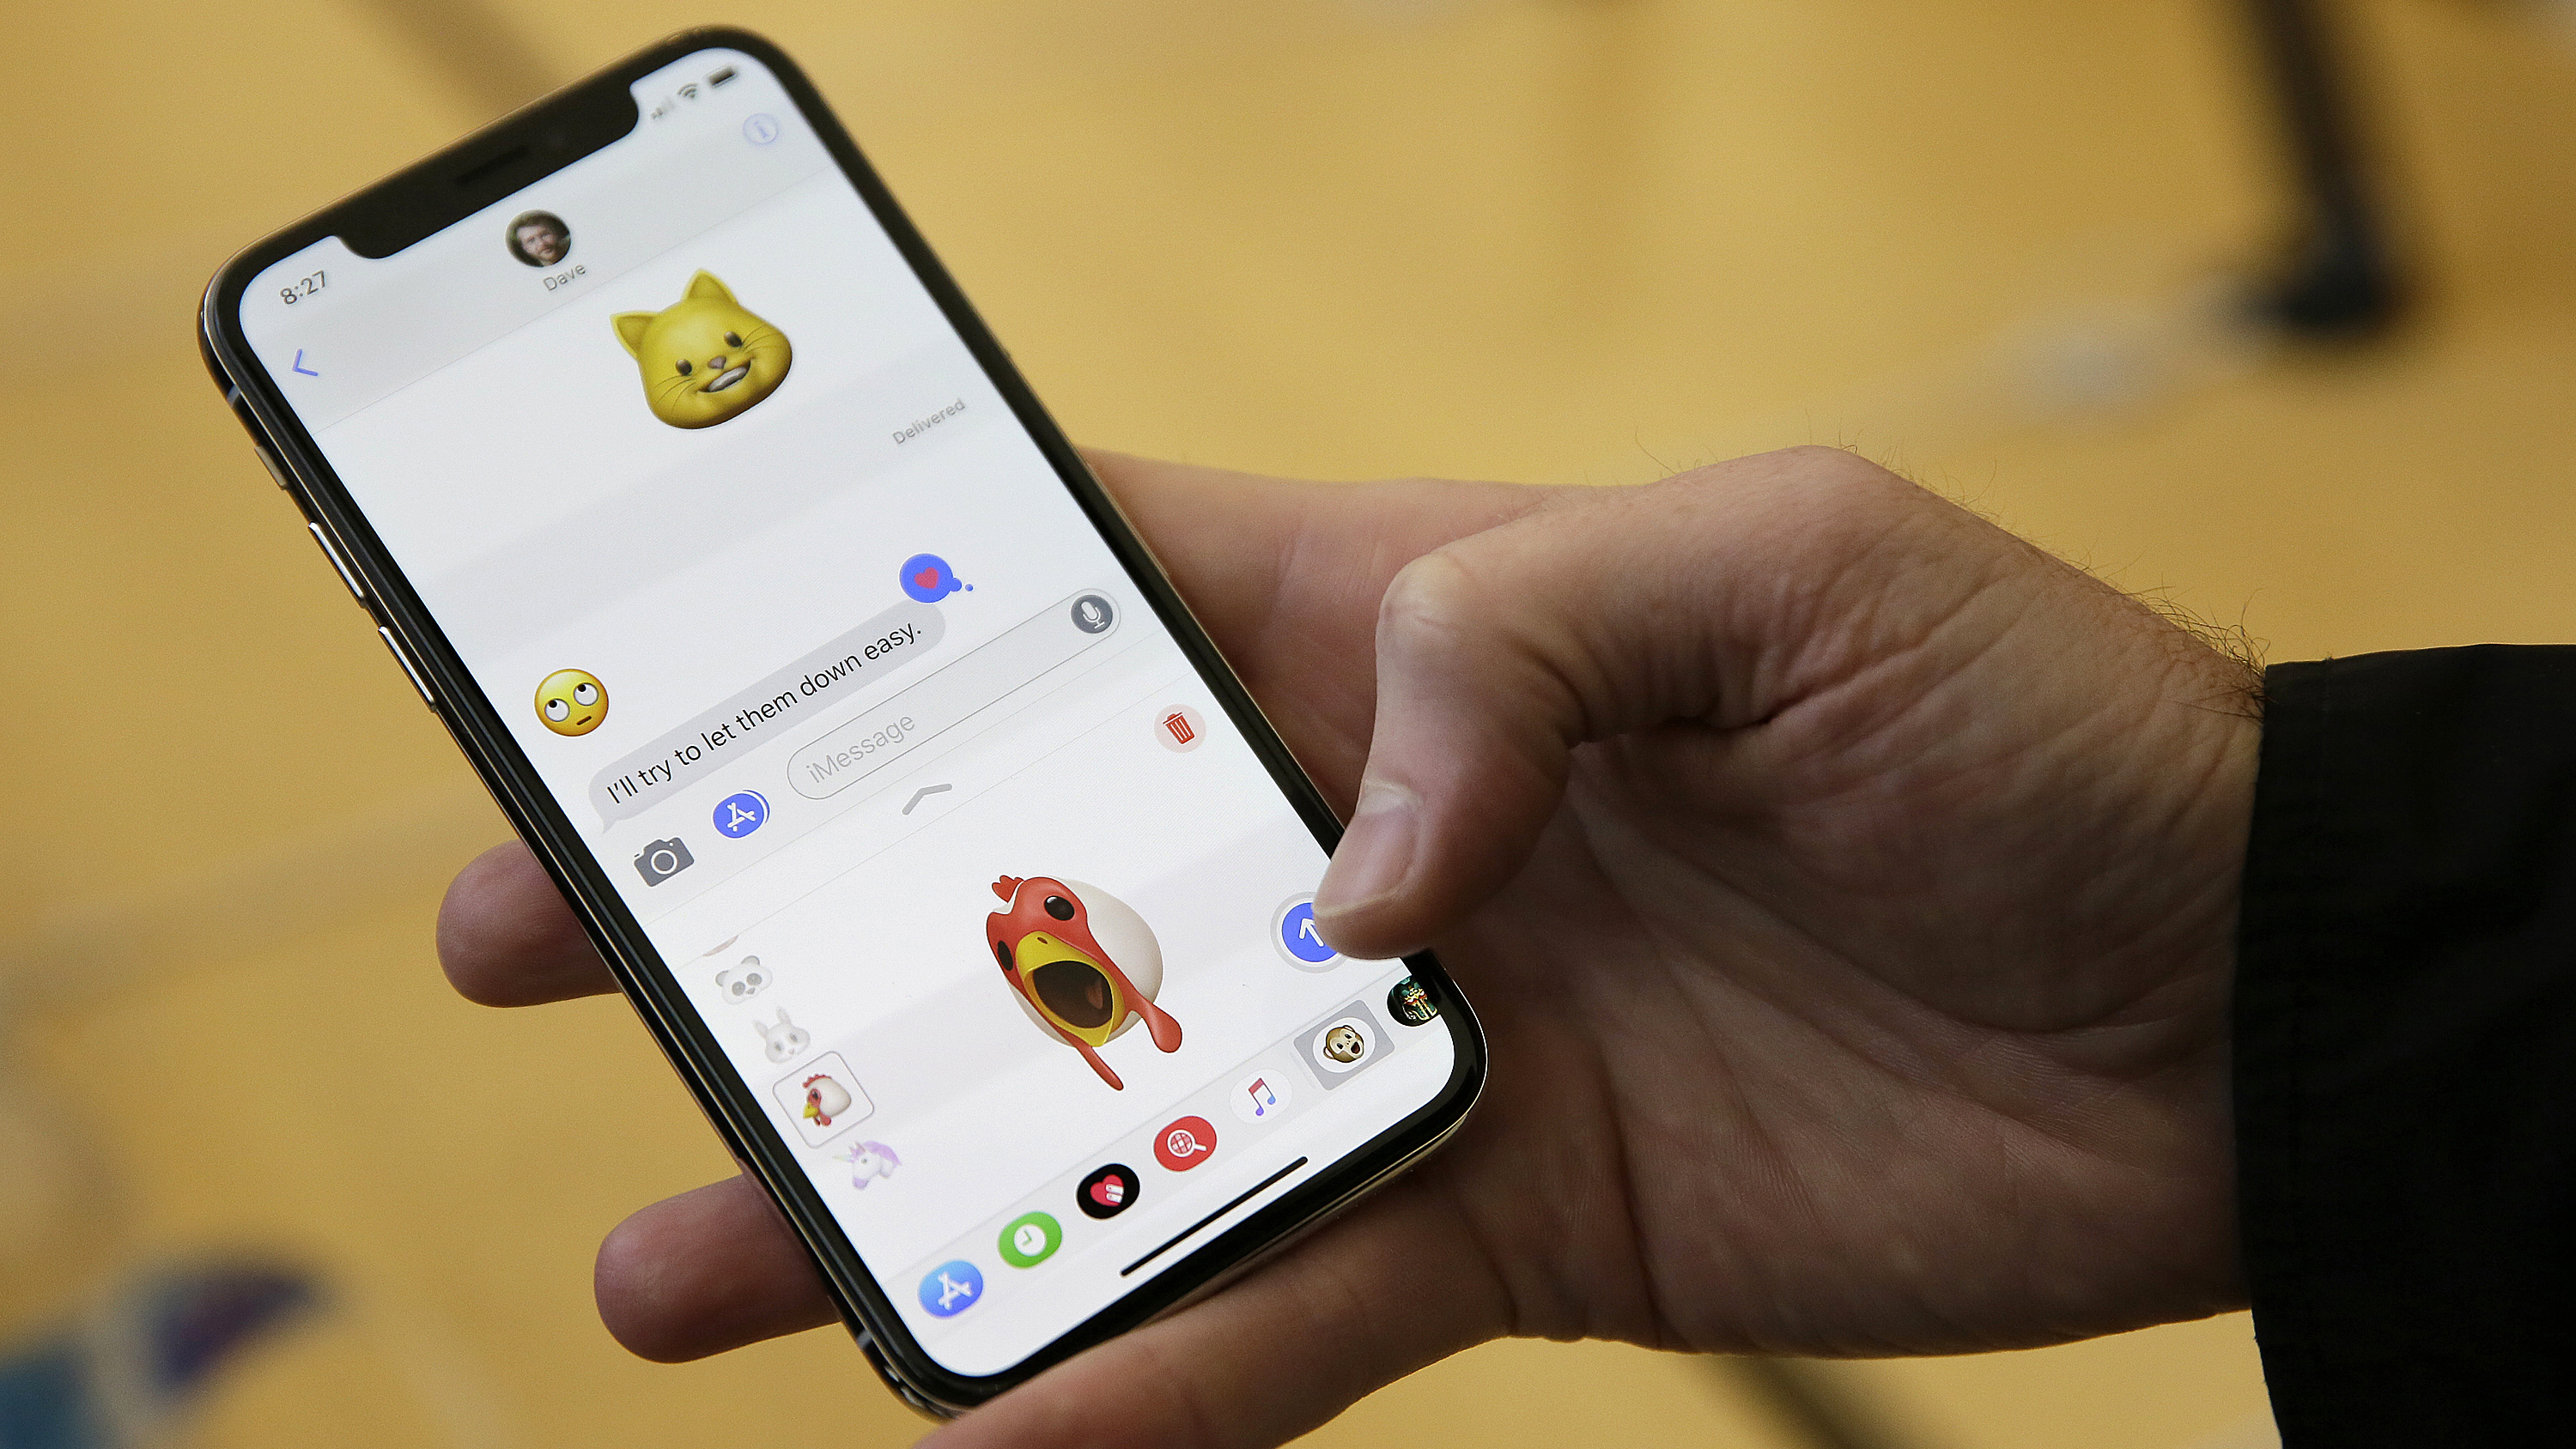 An Apple employee demonstrates the animoji feature of the new iPhone X at the Apple Union Square store Friday, Nov. 3, 2017, in San Francisco. Apple's iPhone X went on sale Friday, as the company scrambles to meet demand for a marquee device that sports a lush screen, facial-recognition skills and a $1,000 price tag. (AP Photo/Eric Risberg)